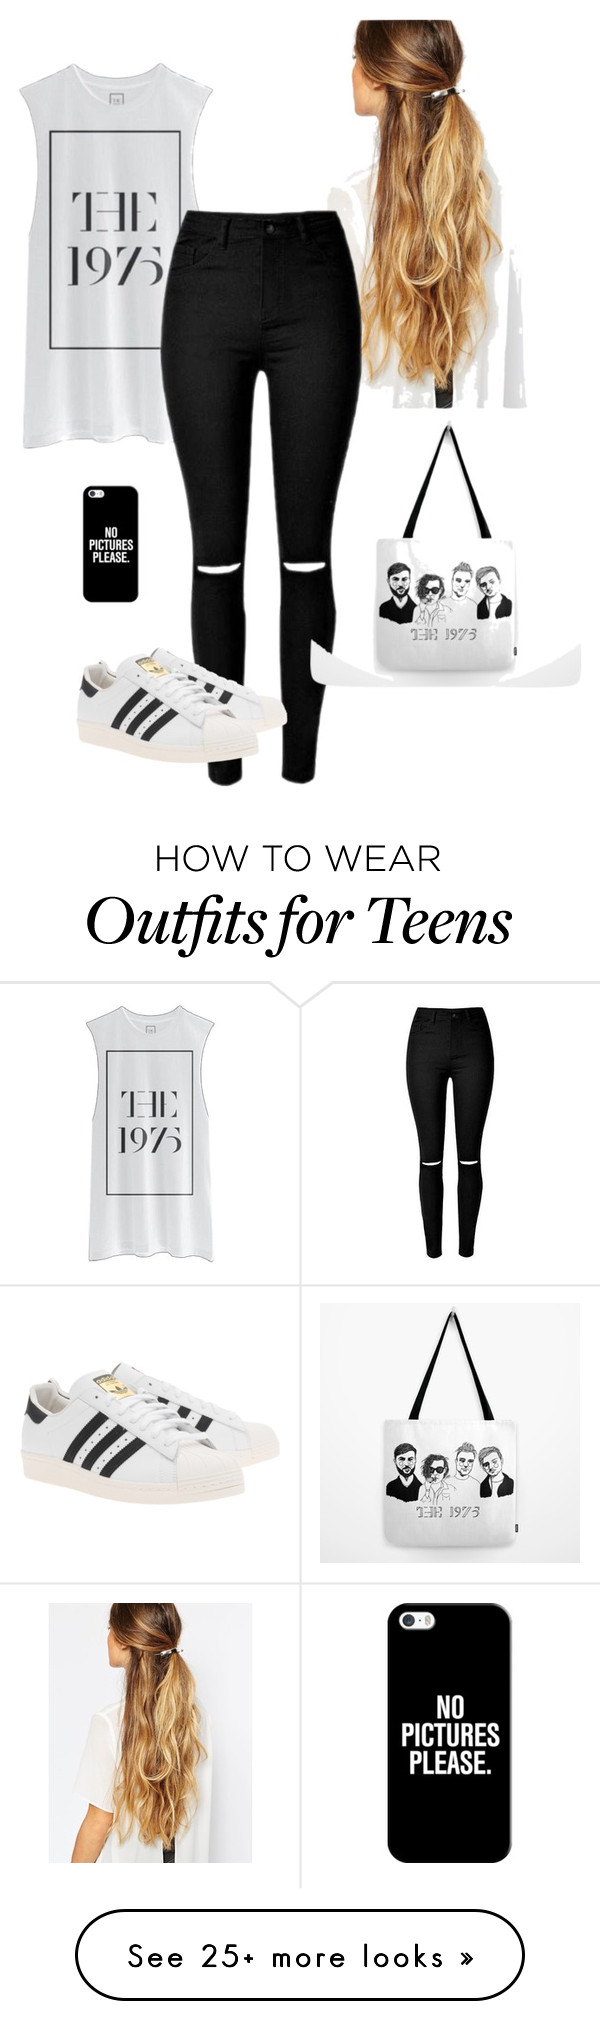 """The 1975"" by andreia-s5 on Polyvore featuring Johnny Loves Rosie, adidas Originals and Casetify"